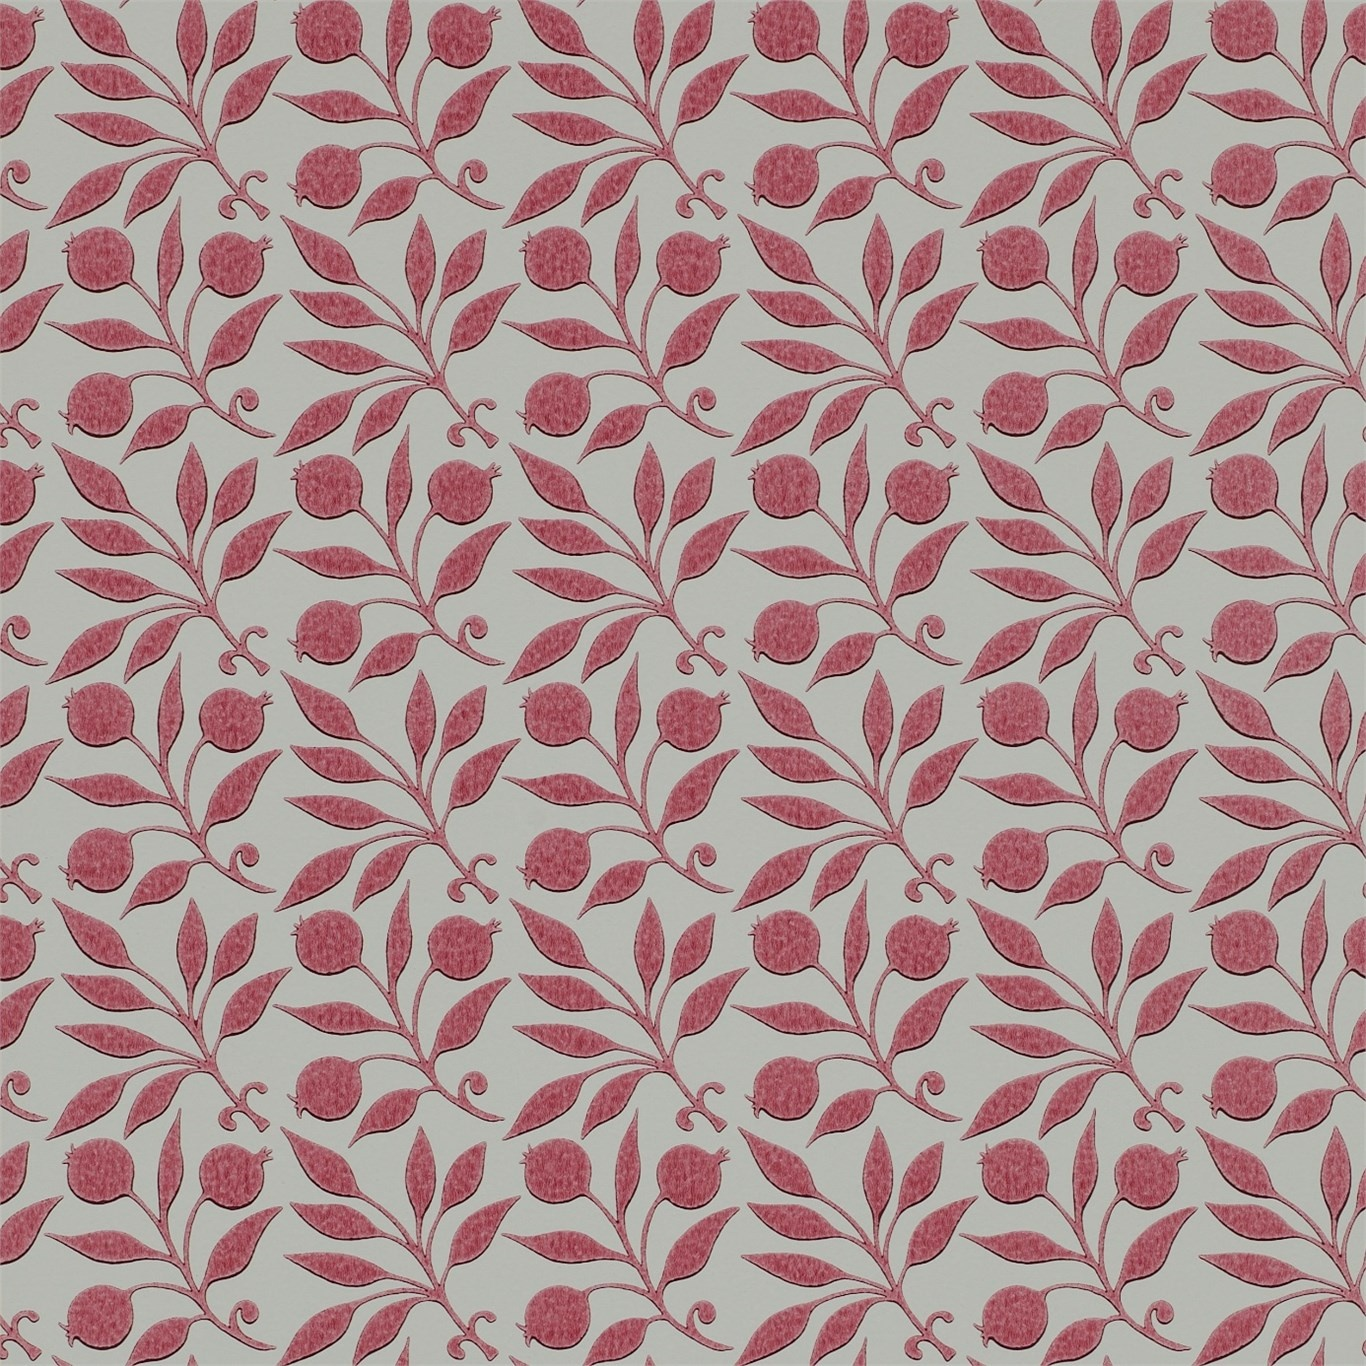 Image of Morris & Co Rosehip Rose Wallpaper 214705